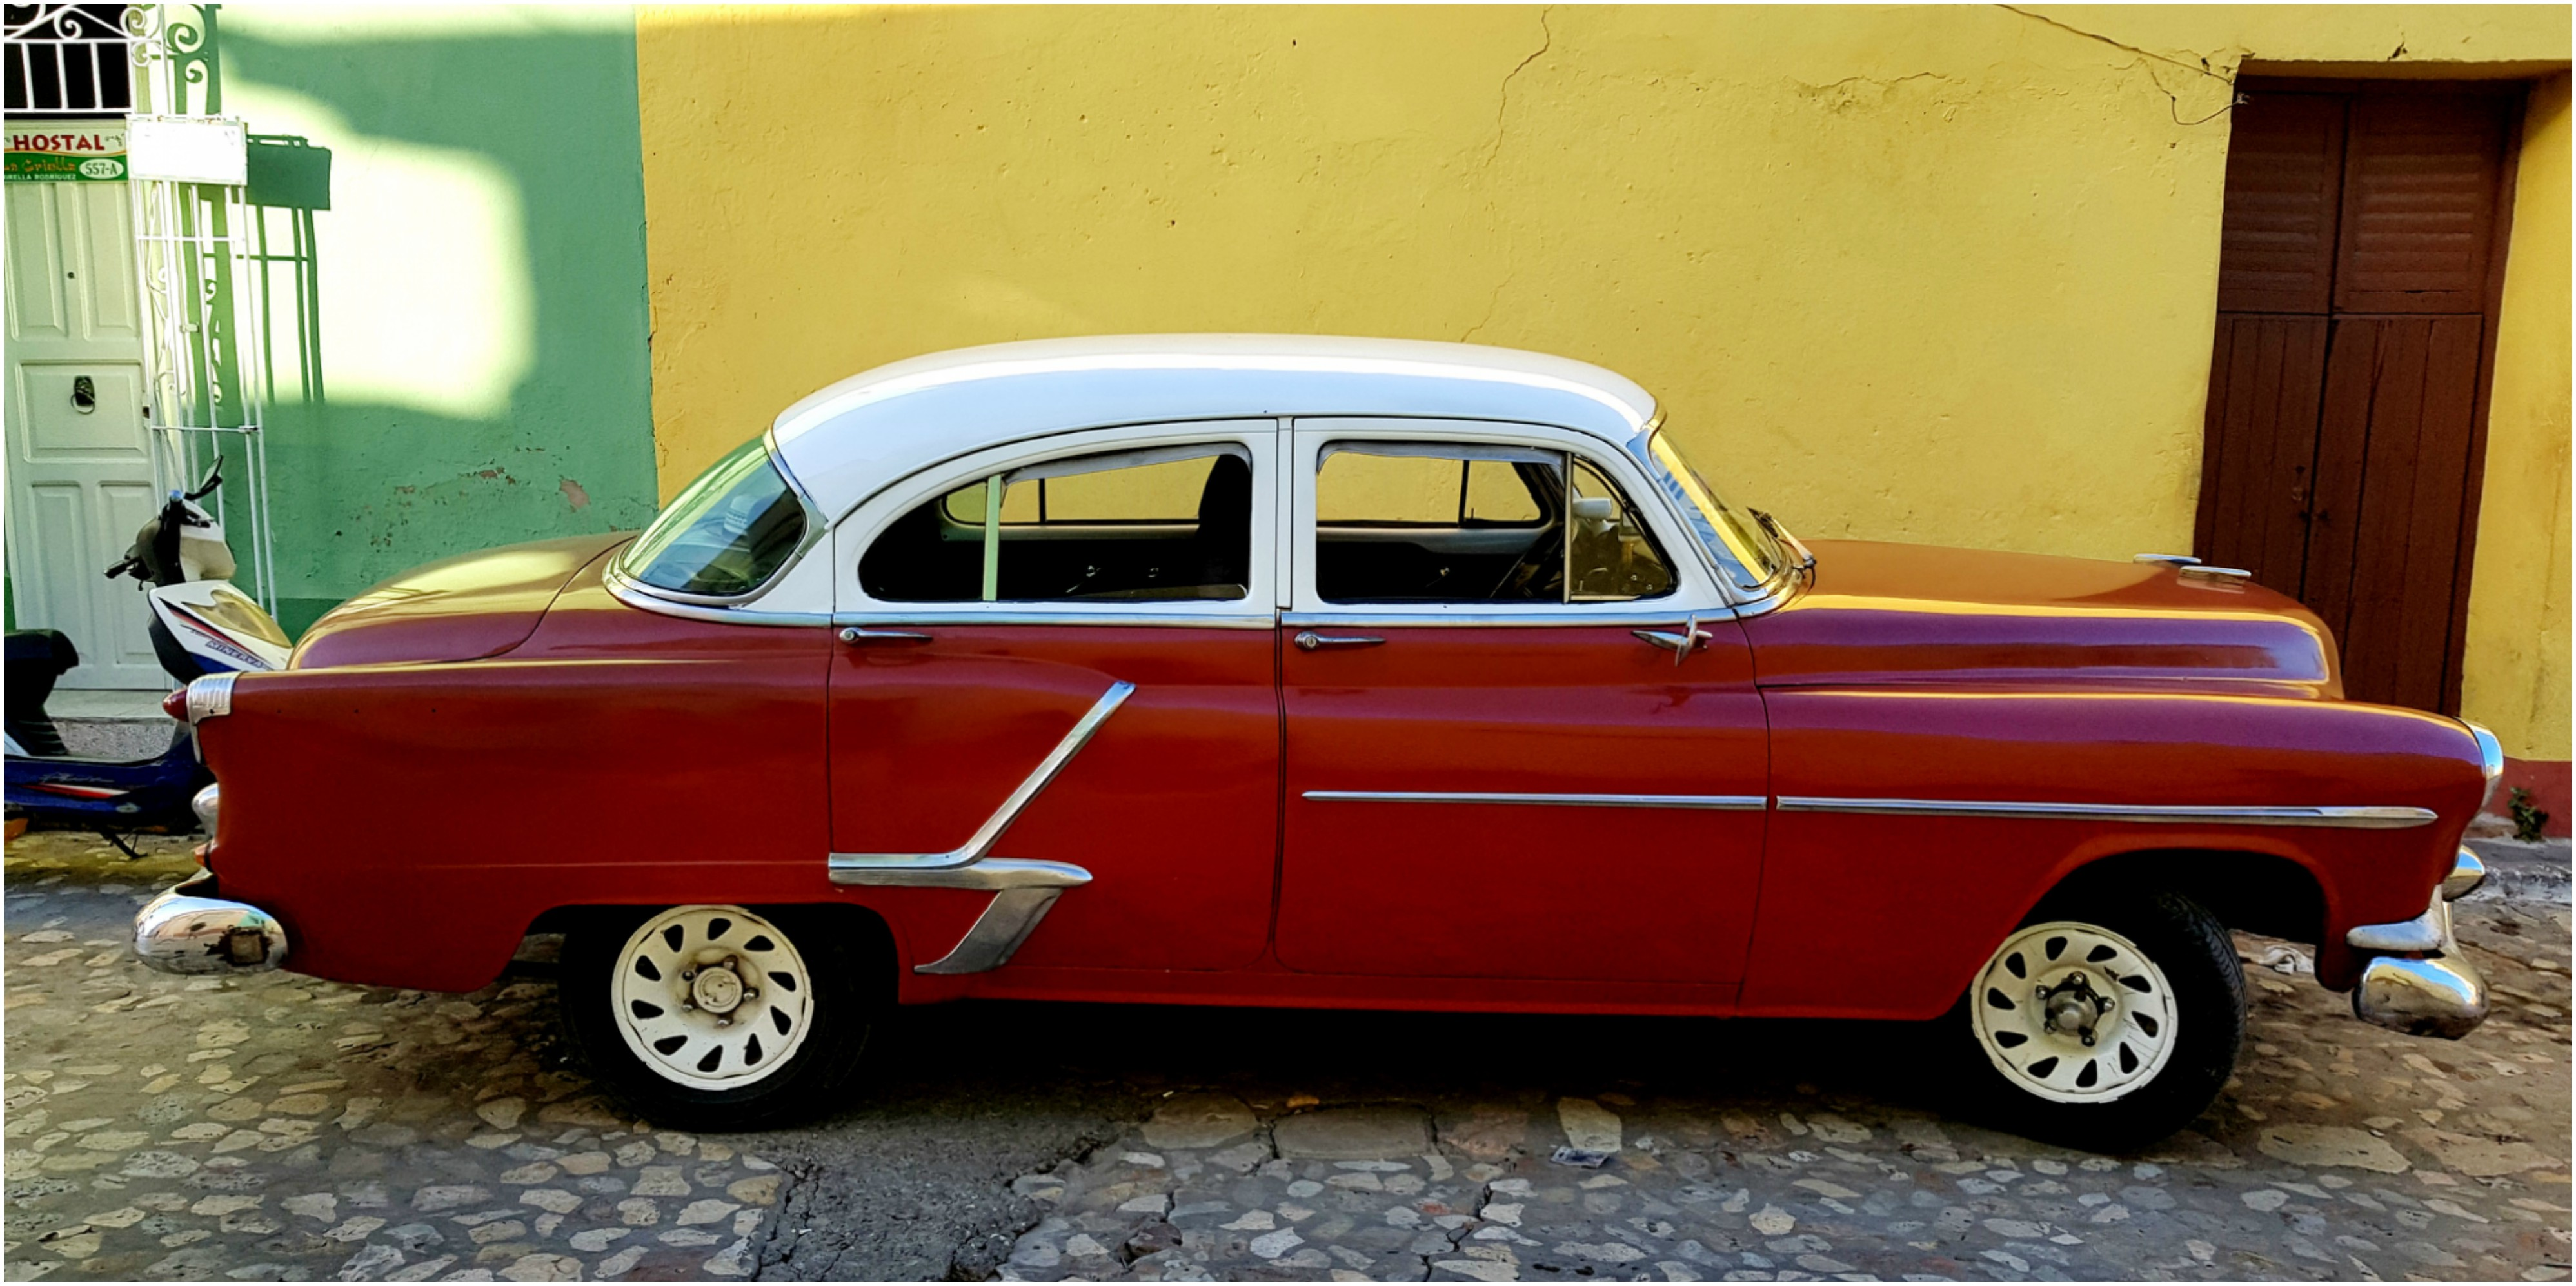 cuba-trinidad-voiture-americaine-chauffeur-willy